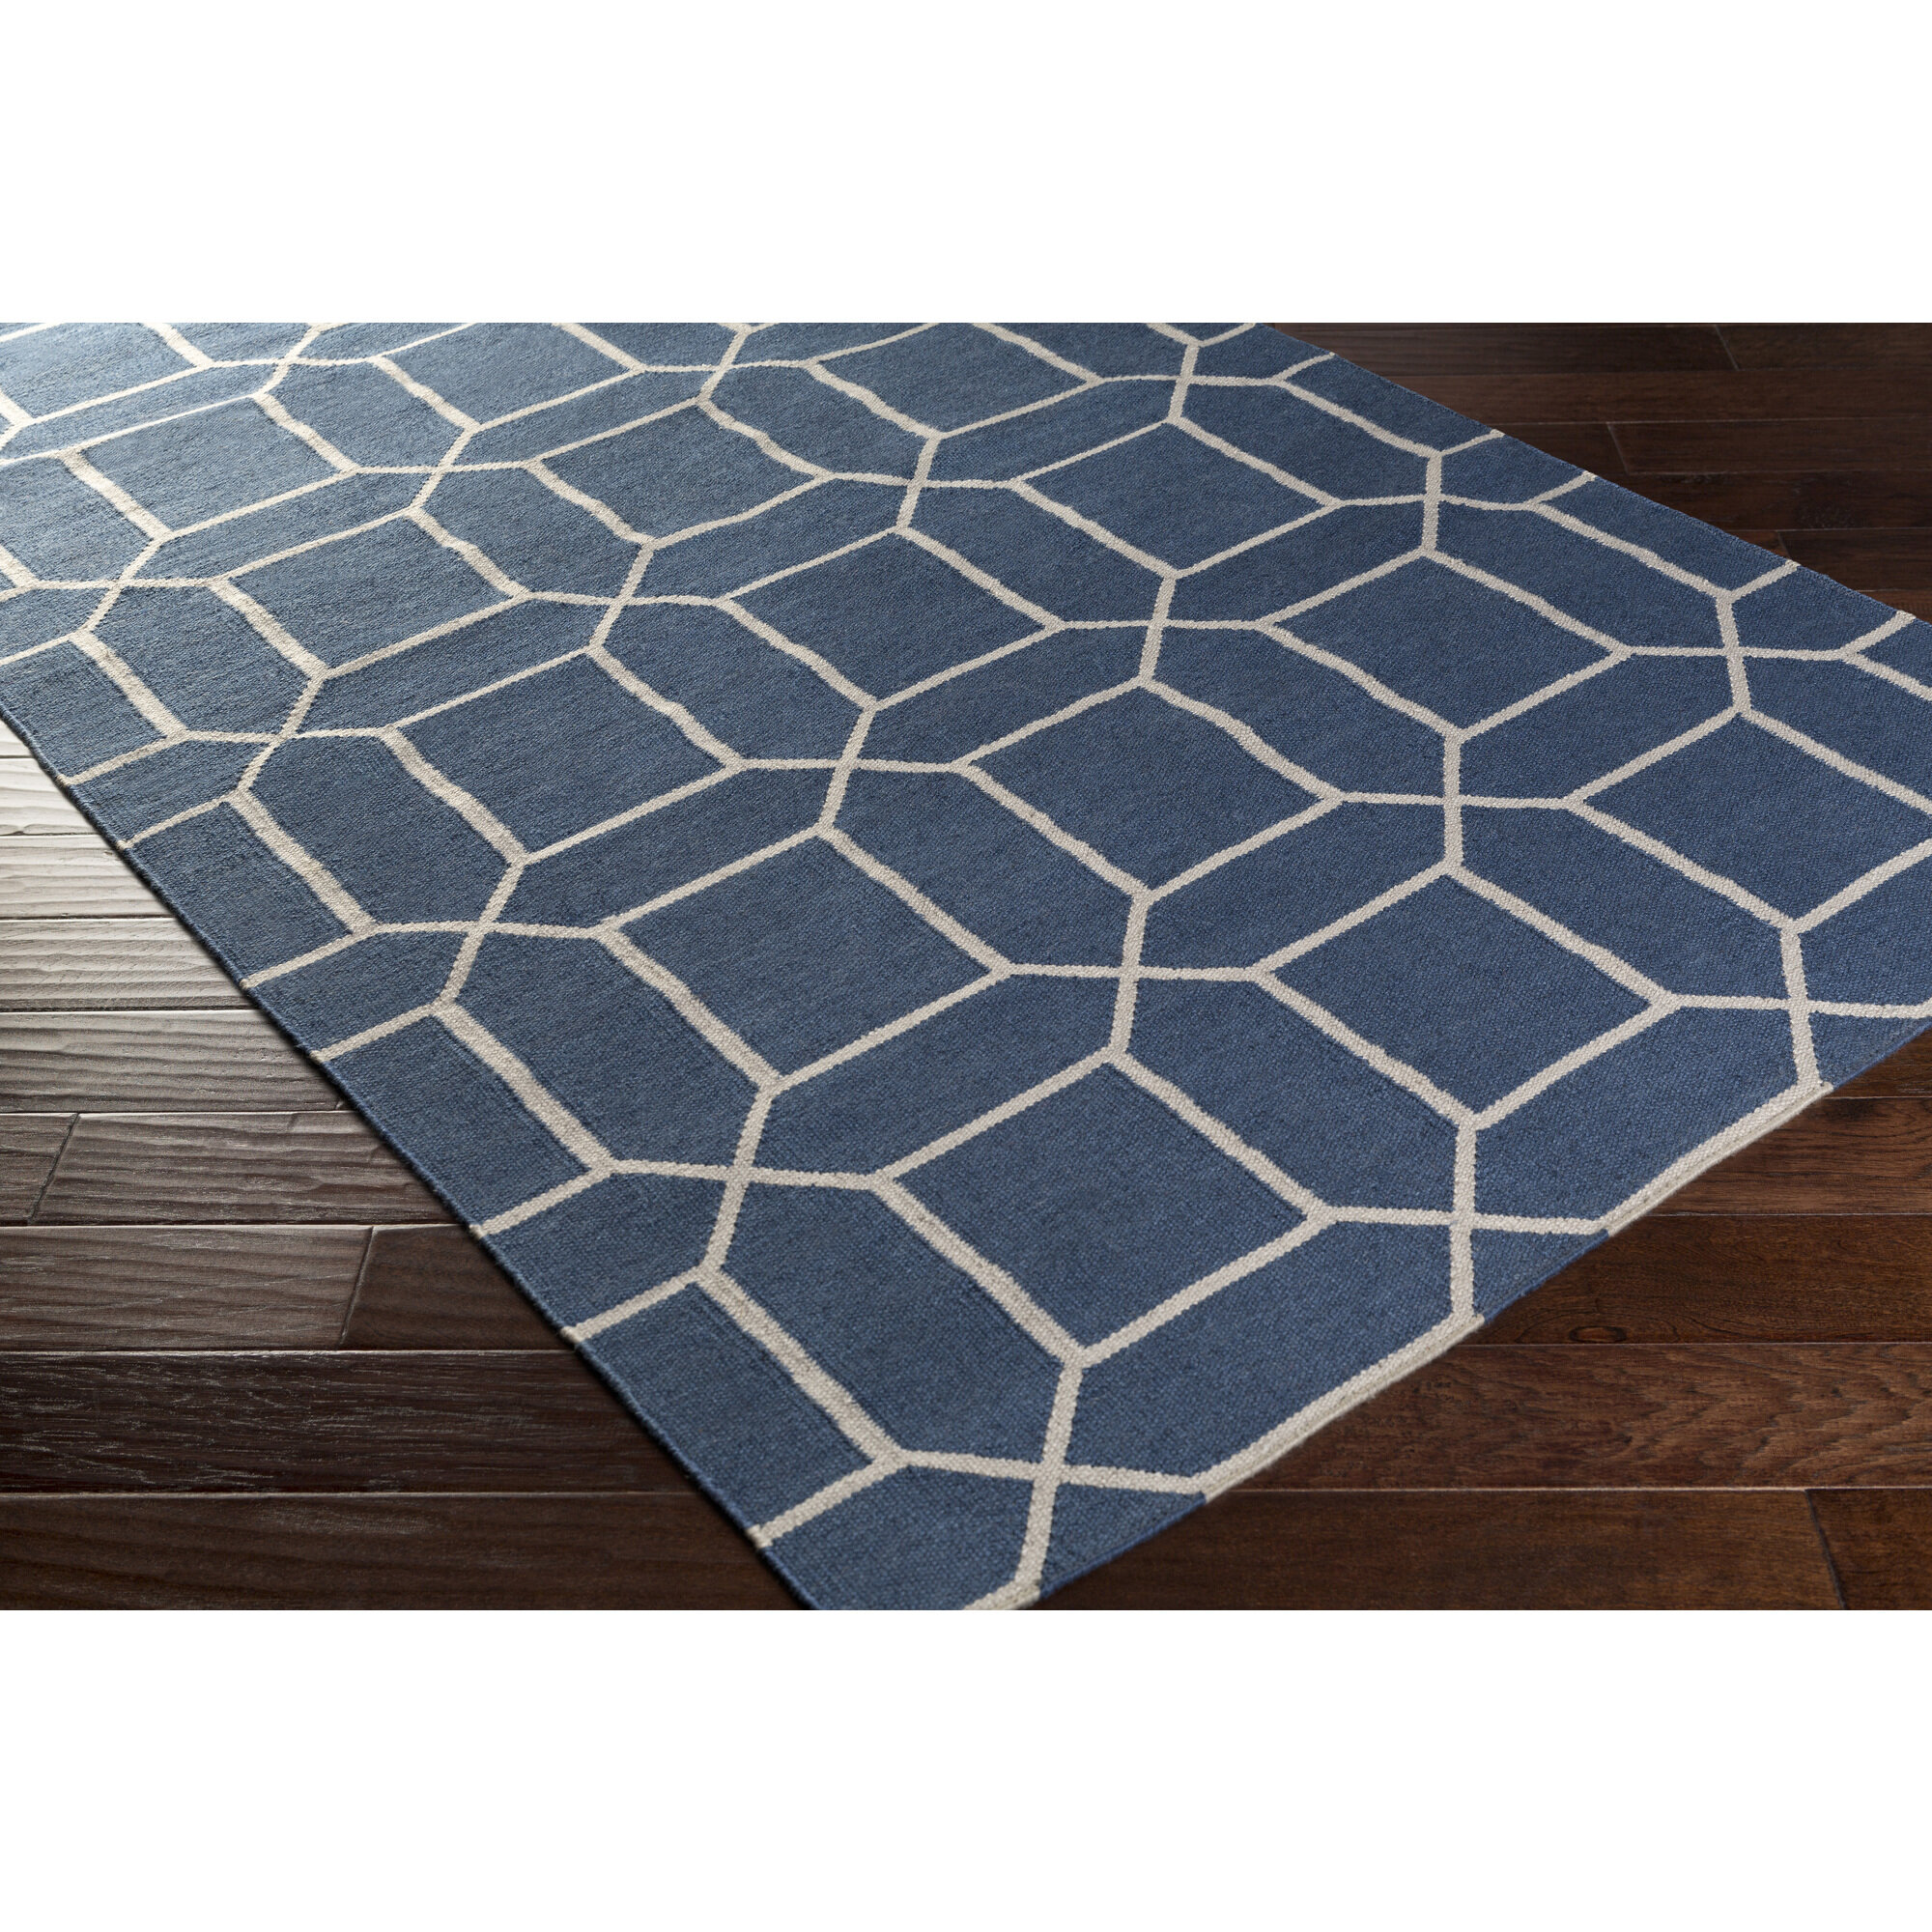 Charlton Home Larksville Geometric Handwoven Blue Indoor Outdoor Area Rug Reviews Wayfair